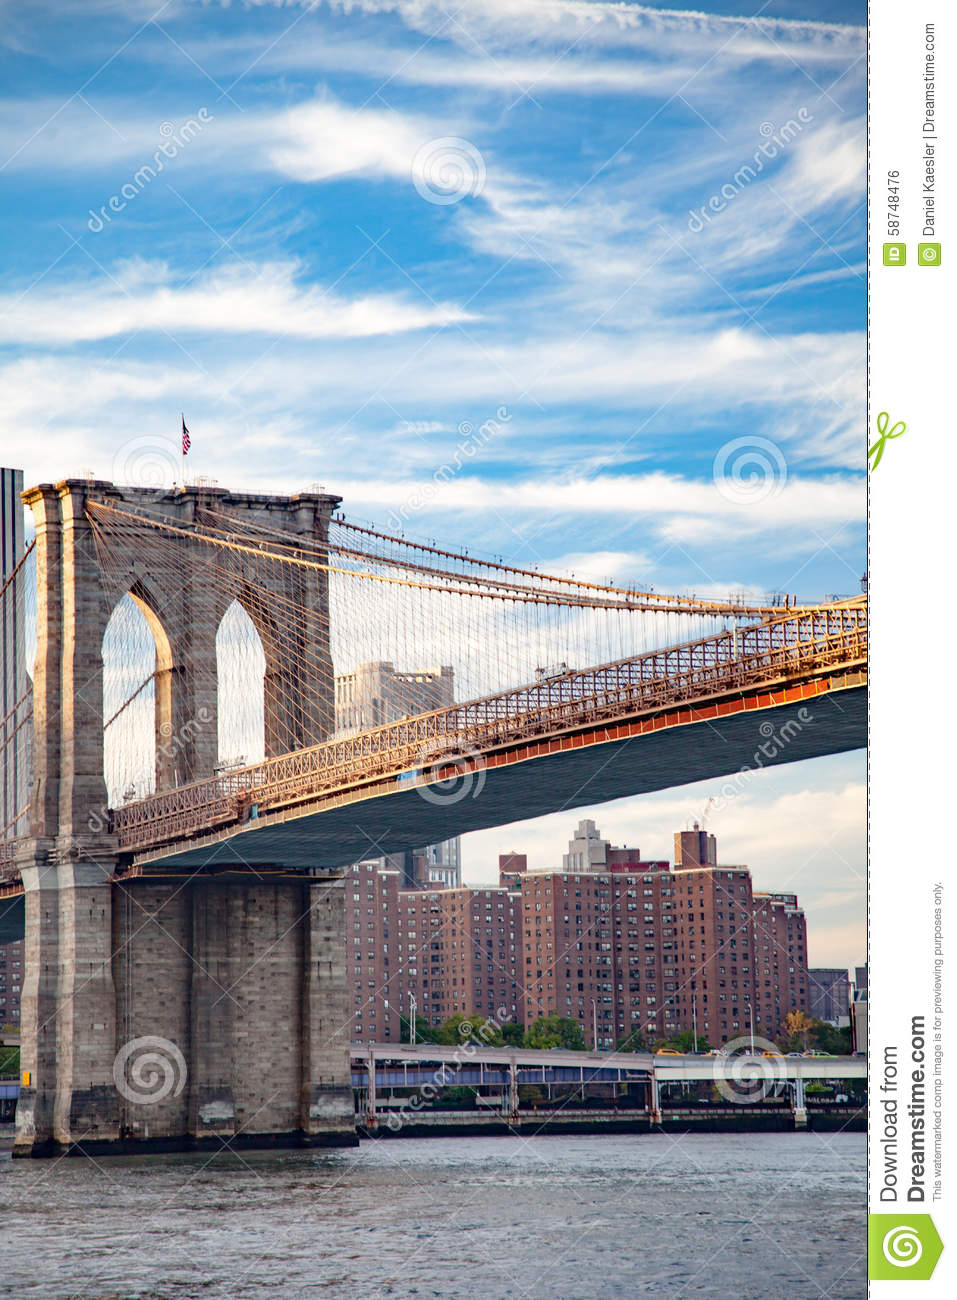 Brooklyn bridge in new york city editorial image for Buying a home in brooklyn